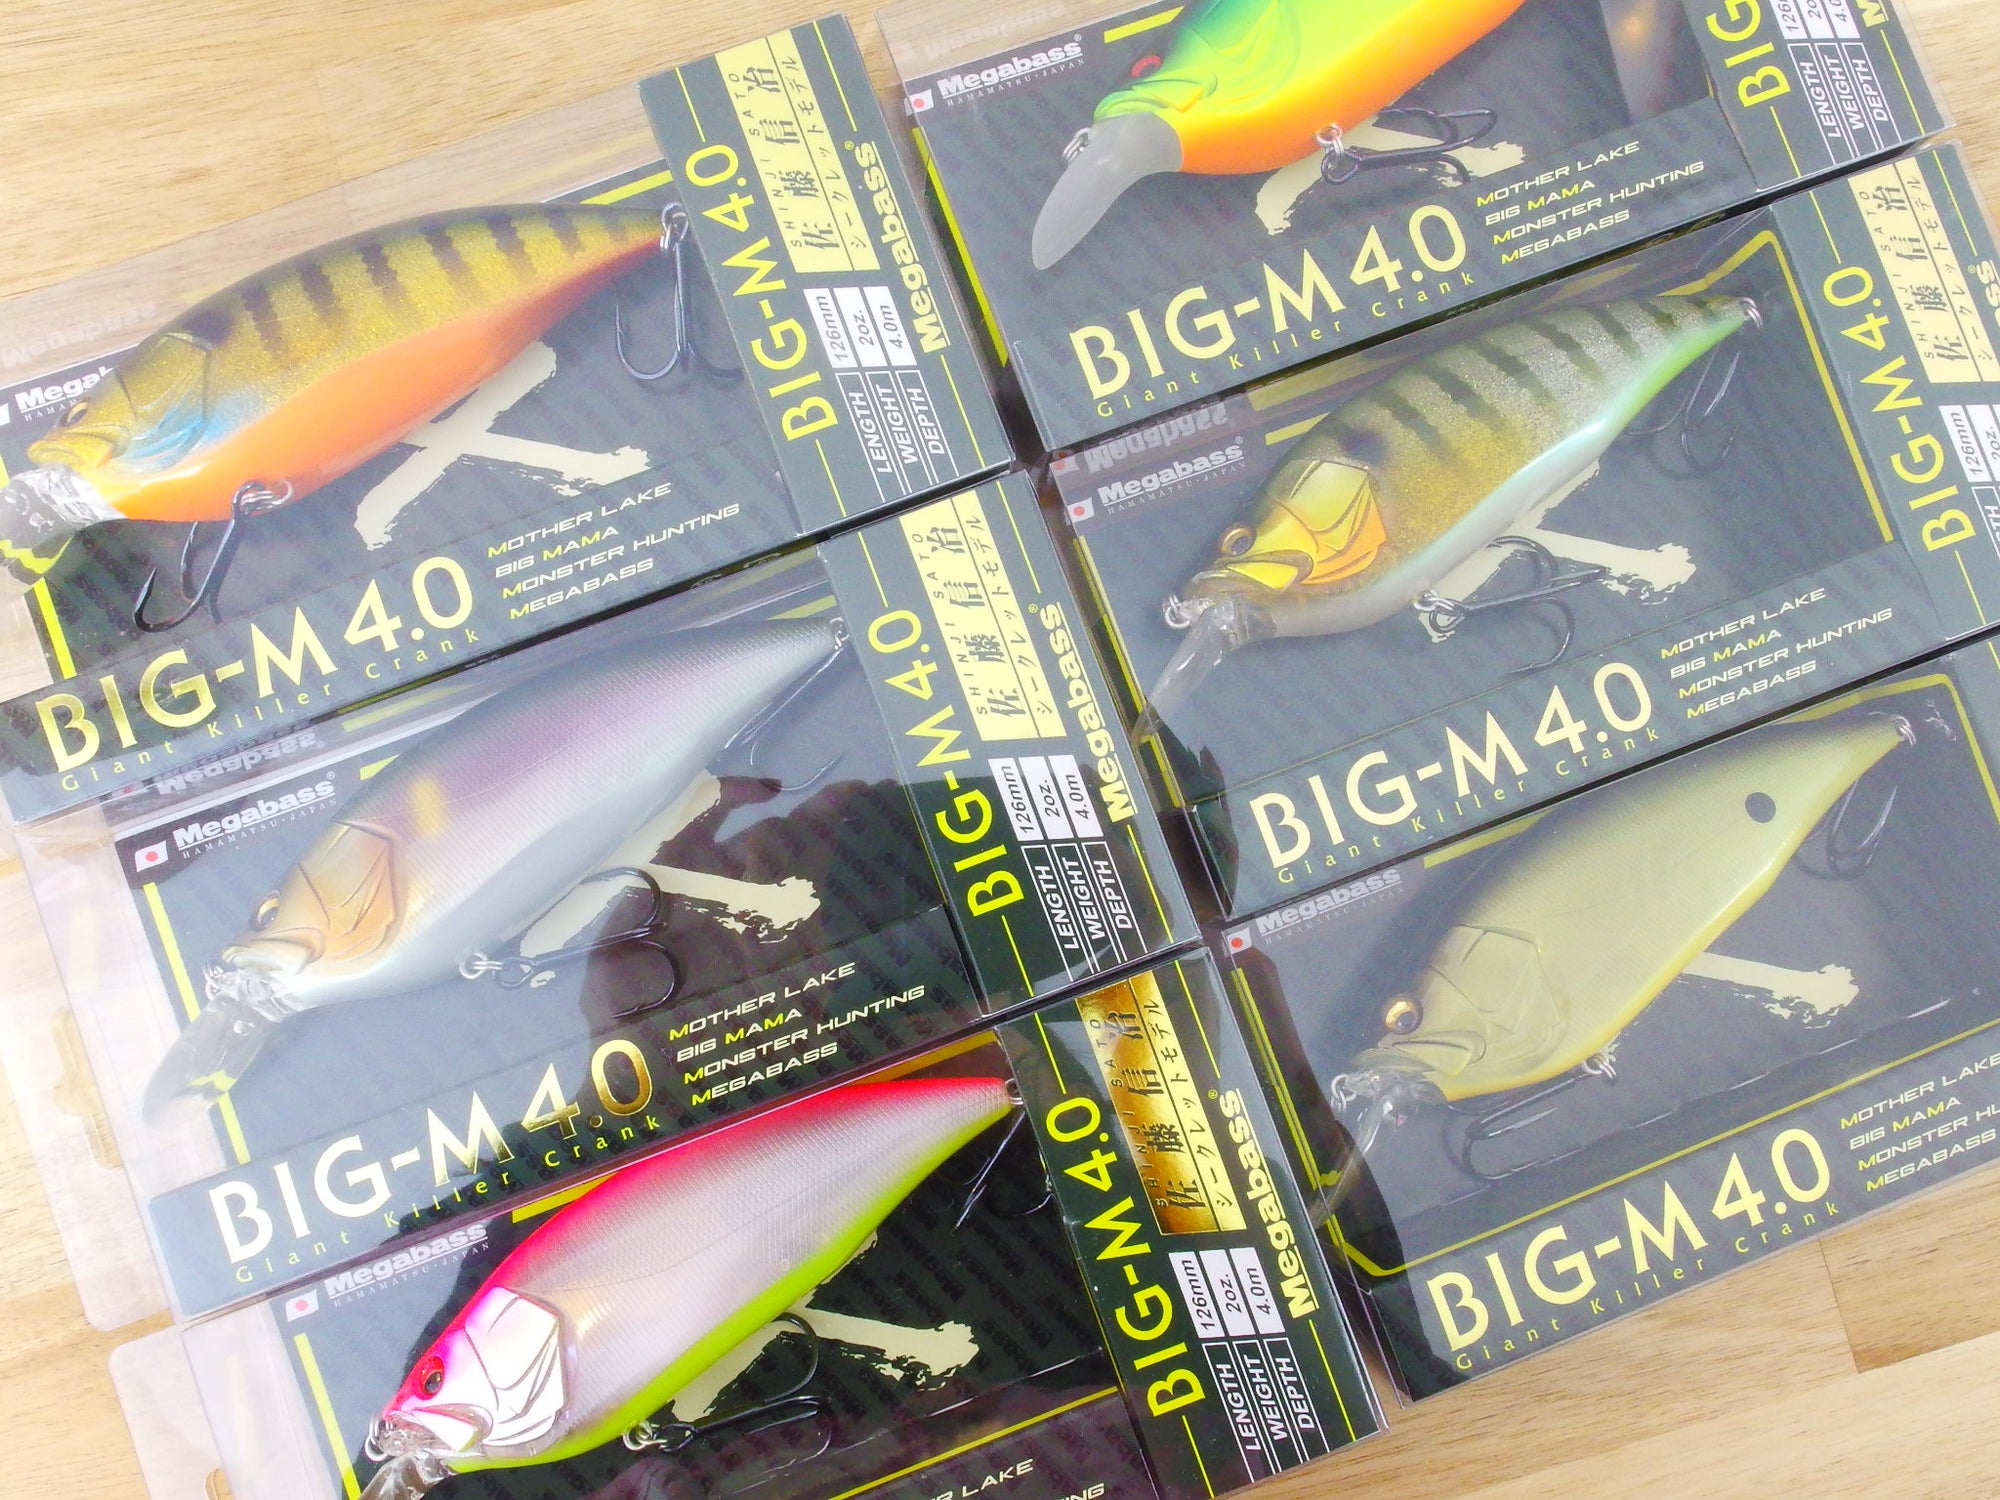 Megabass BIG-M 4.0